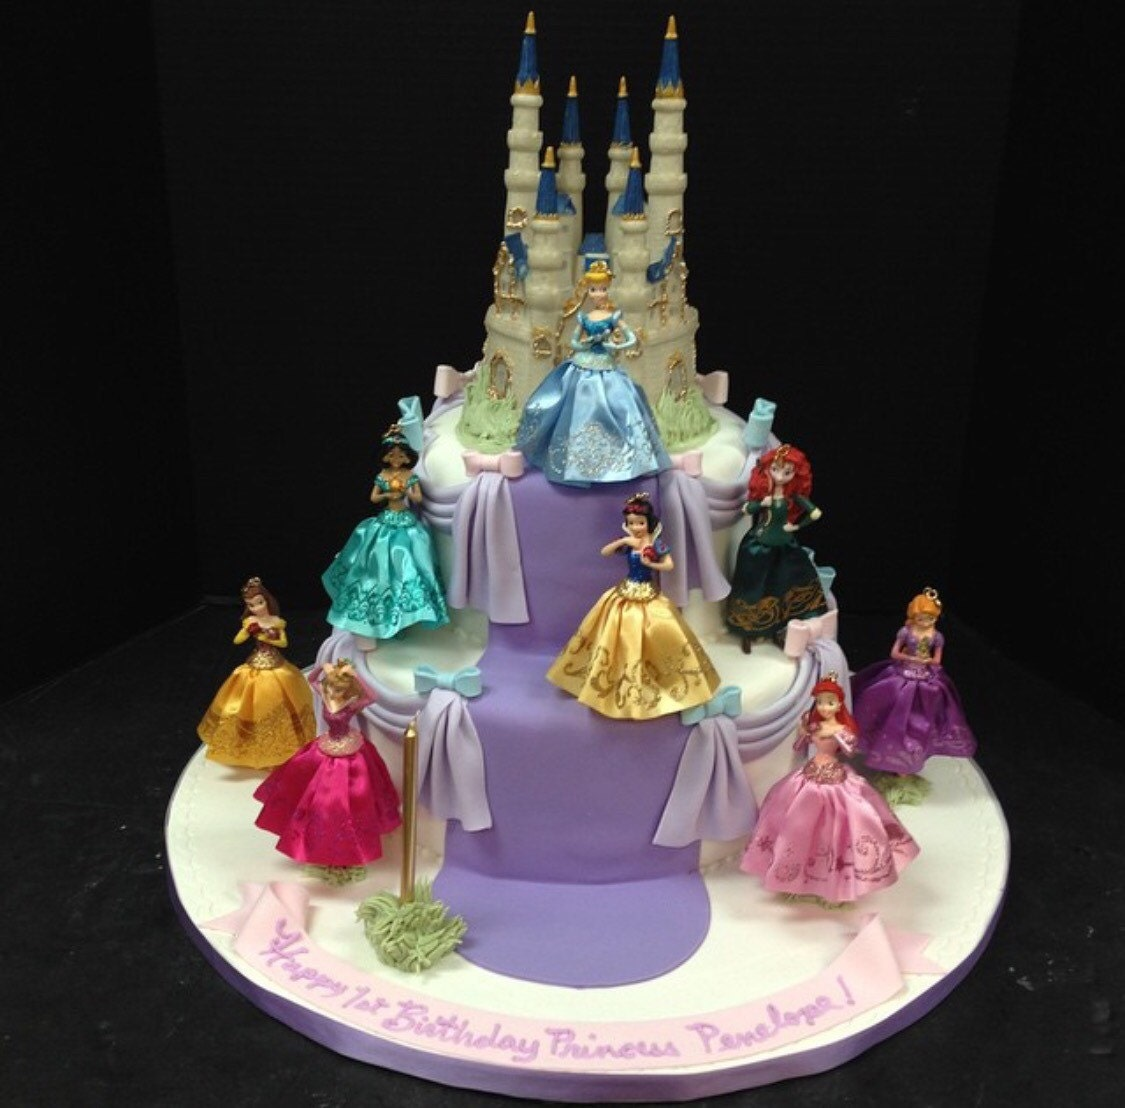 Disney Cinderella Birthday Cake Image Inspiration of Cake and